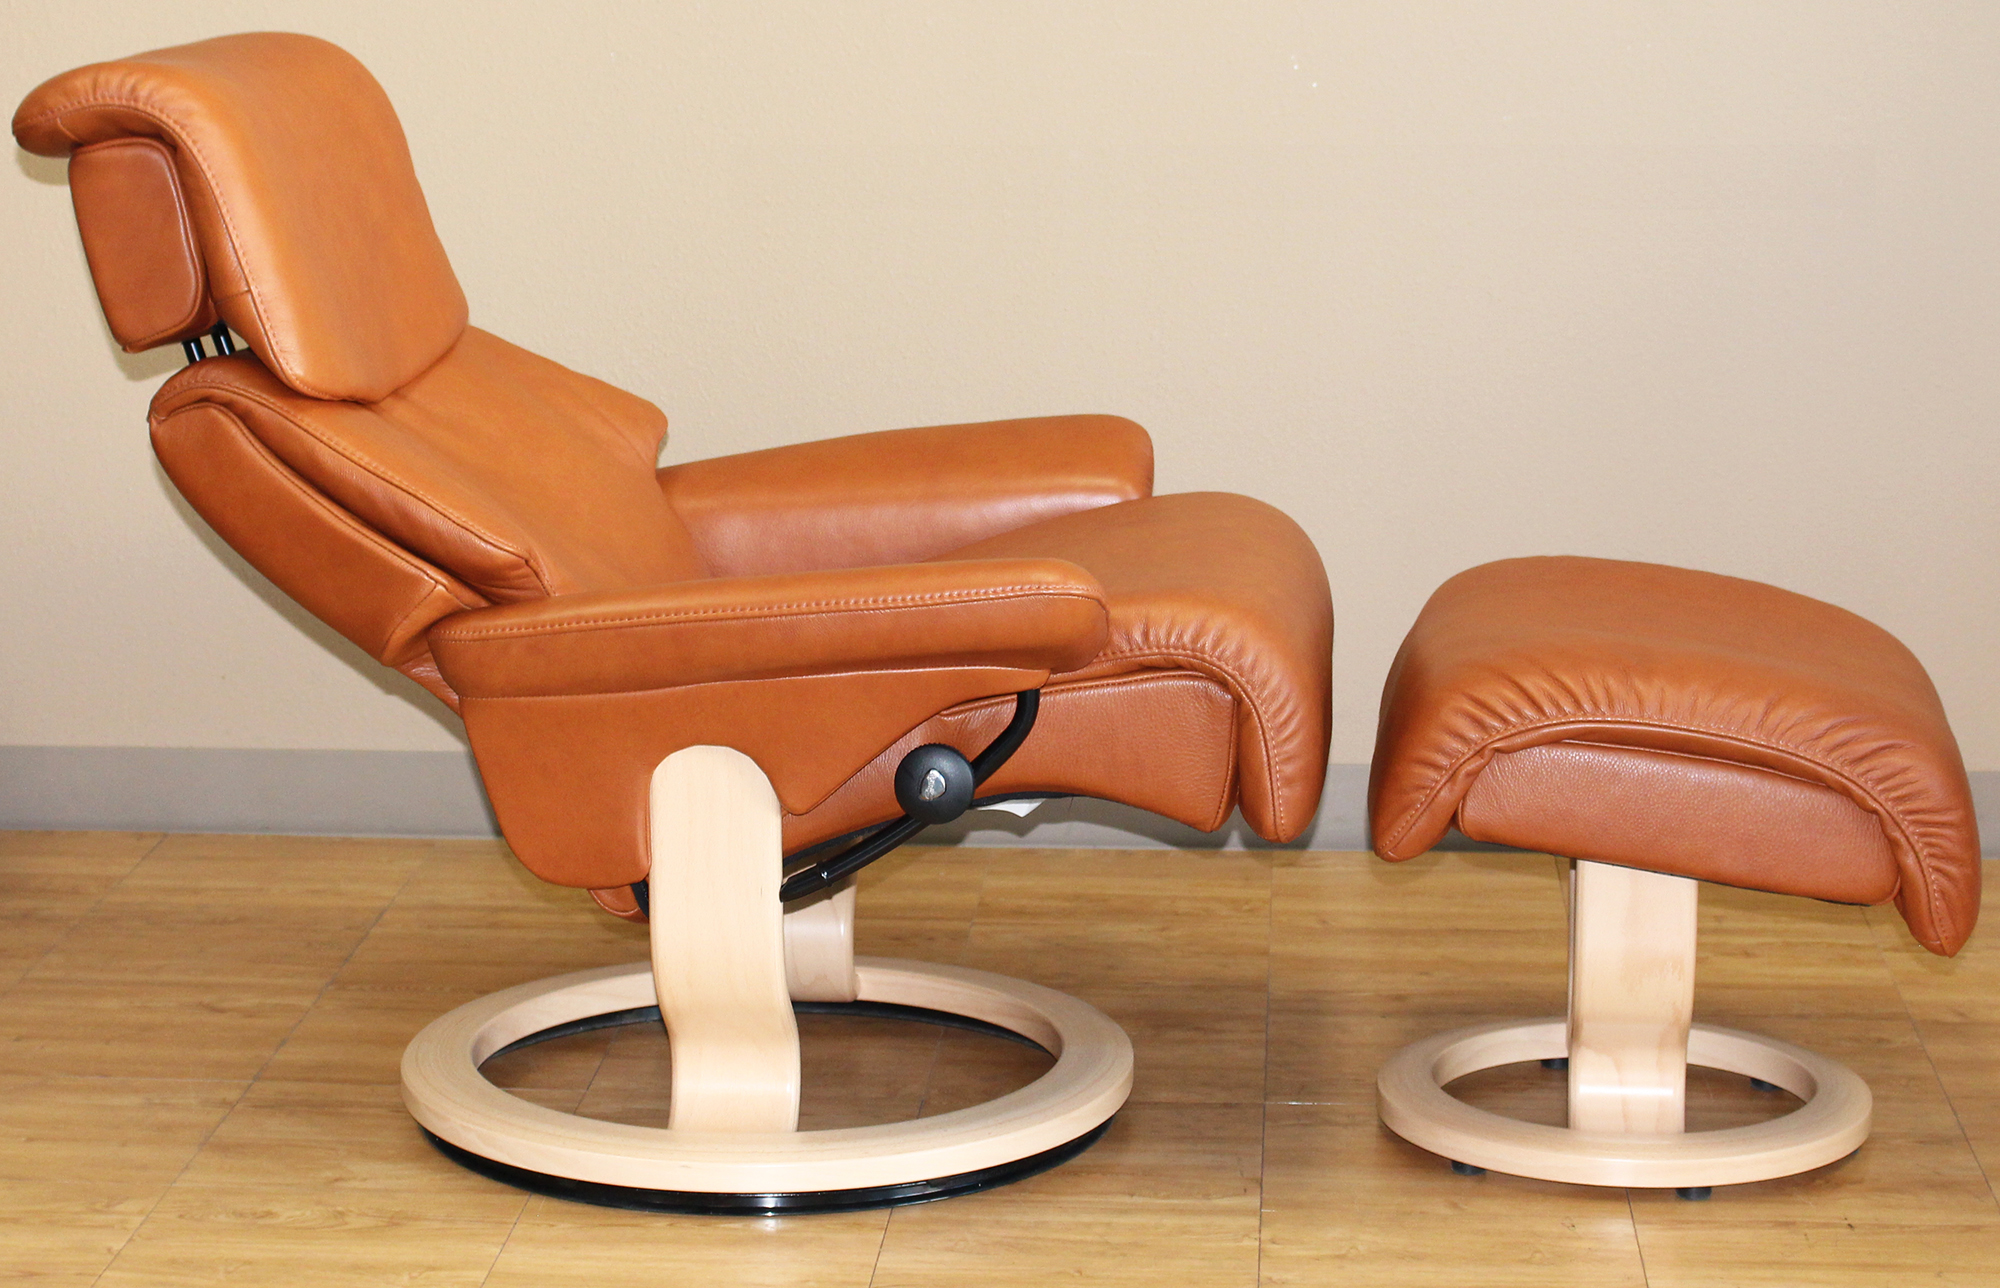 Dream Stressless Royalin TigerEye Recliner Chair Leather by Ekornes : stressless dream recliner - islam-shia.org